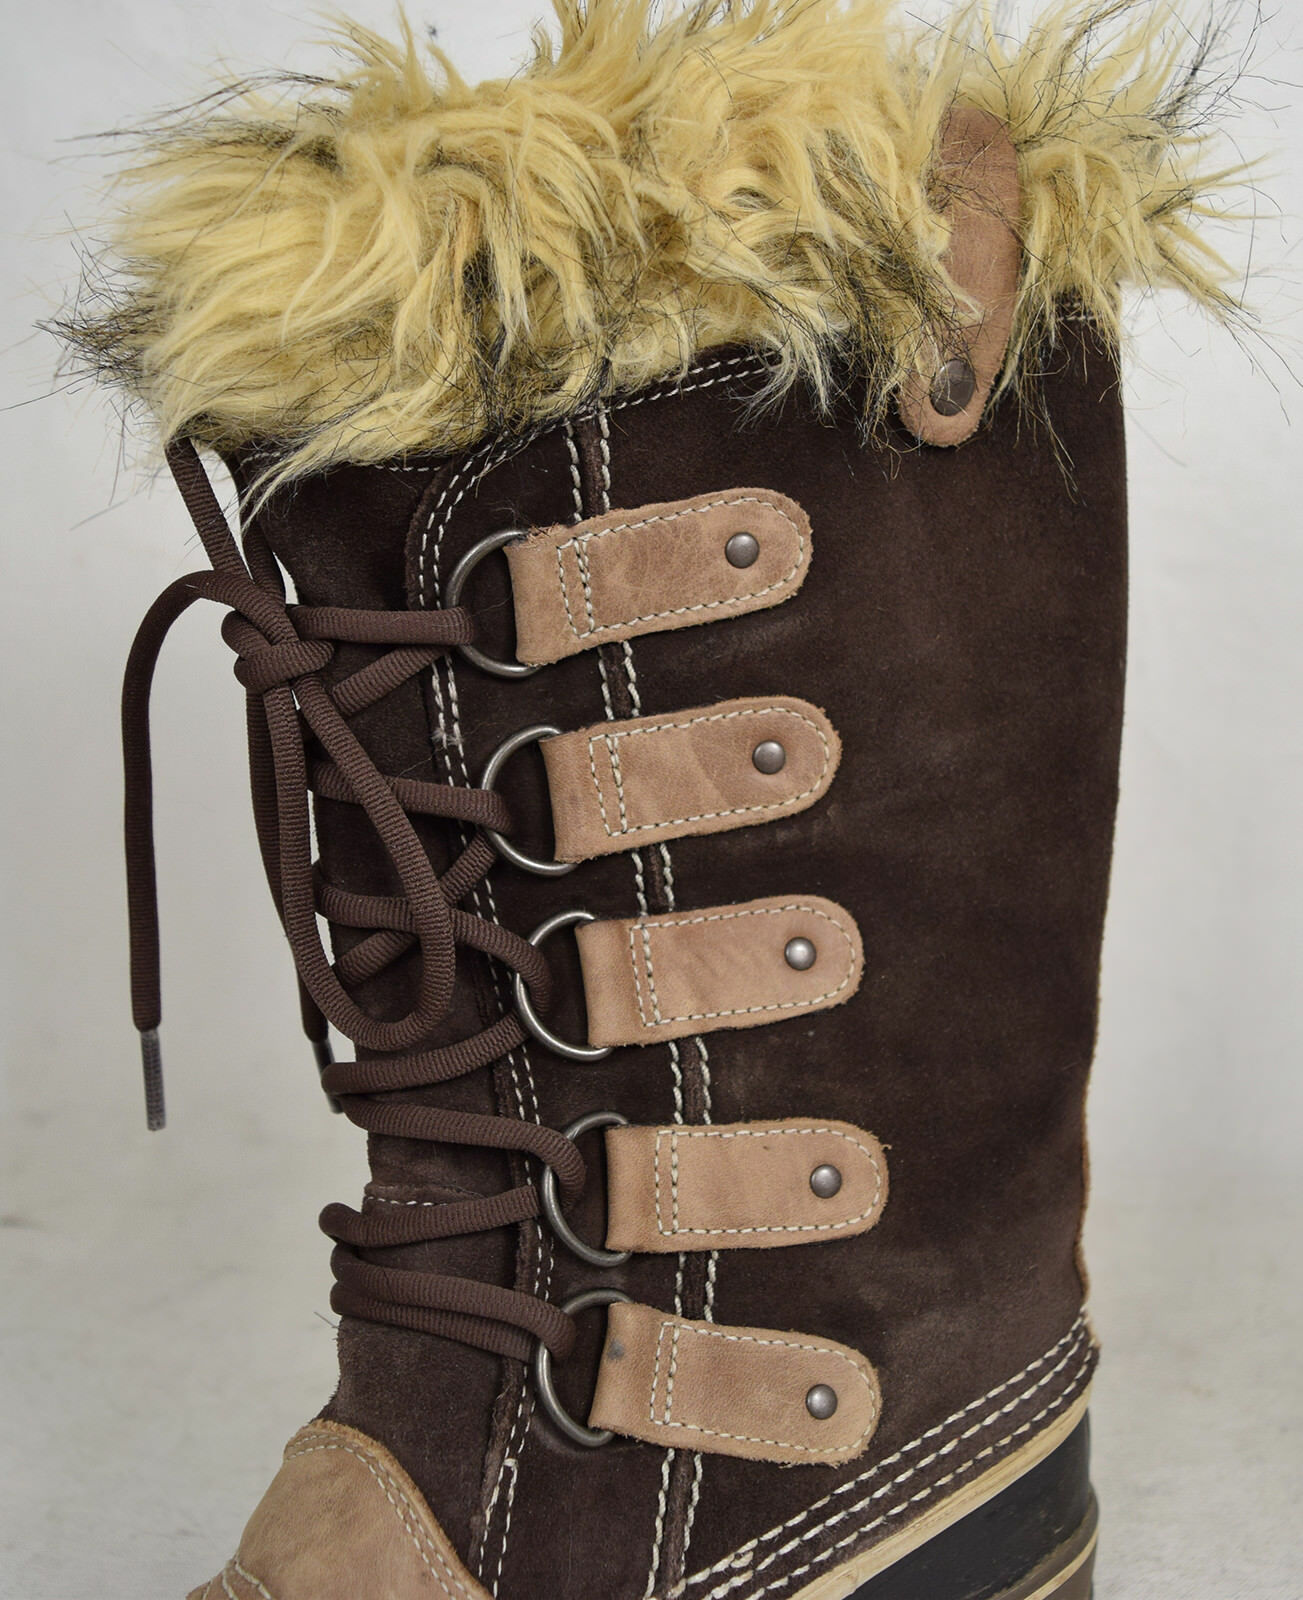 Sorel Joan of Arctic Tall Snow Stiefel Waterproof Braun 7 Braun Waterproof EUC Damenschuhe 98b2ad